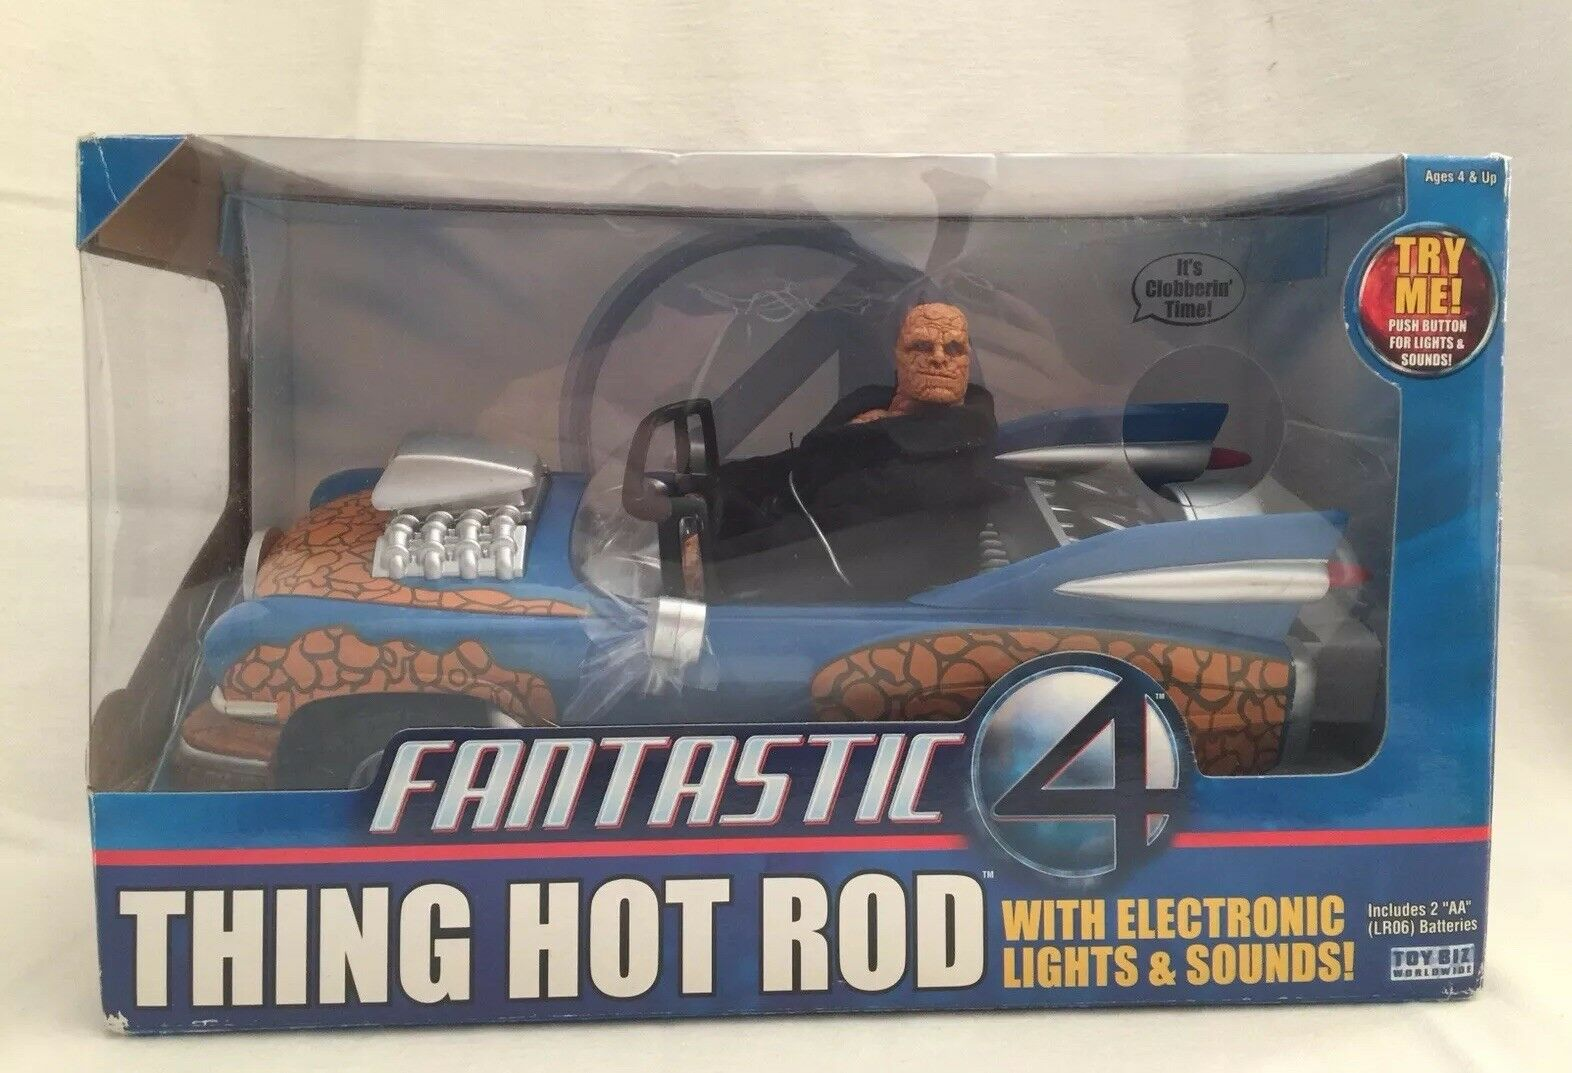 Fantastic 4 Thing caliente Rod with Electronic luci & suonos  MARVEL  scelta migliore